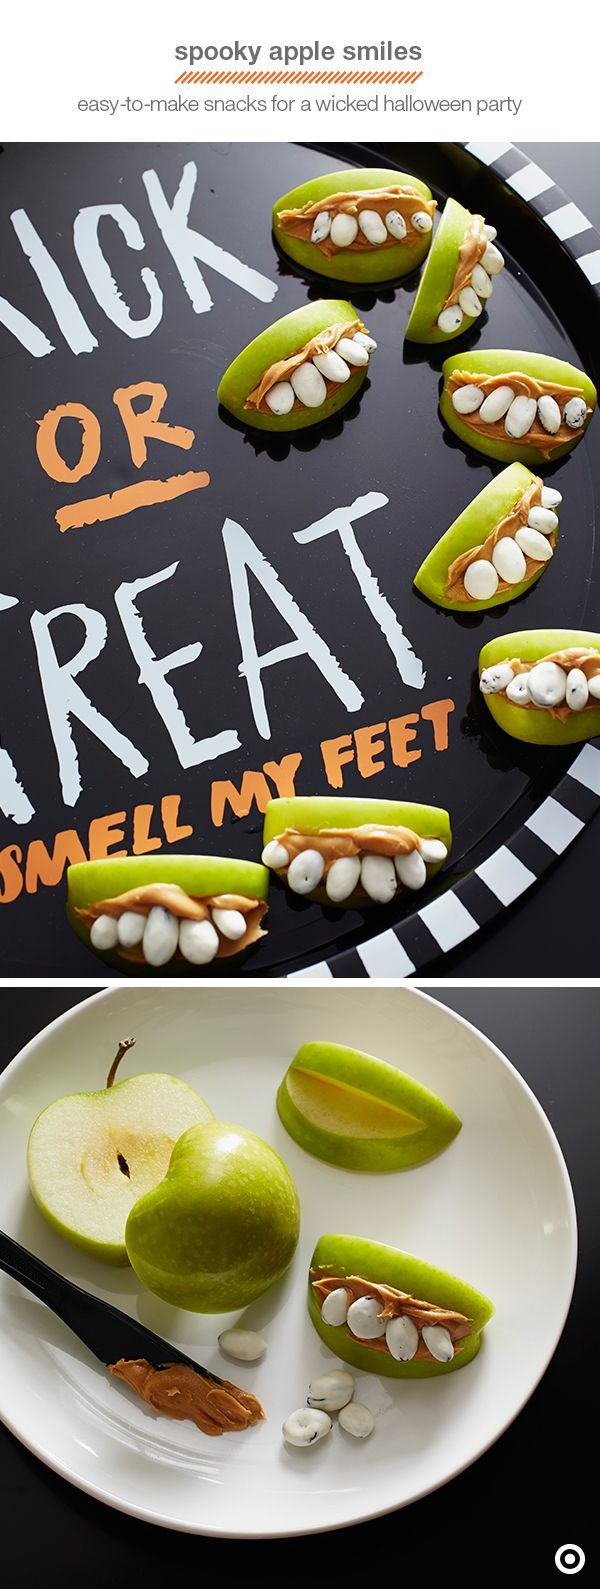 Here's a Halloween treat you can really sink your teeth into. Some green apple slices, creamy peanut butter, and yogurt-covered raisins are all it takes to make a snack sure to be a hit with kids. Simply cut a notch in the center of each apple slice and brush them with lemon juice to prevent browning. Fill the notches (or mouths) with peanut butter and top with a row of raisins. Best part? It'll keep kids from filling up on candy.